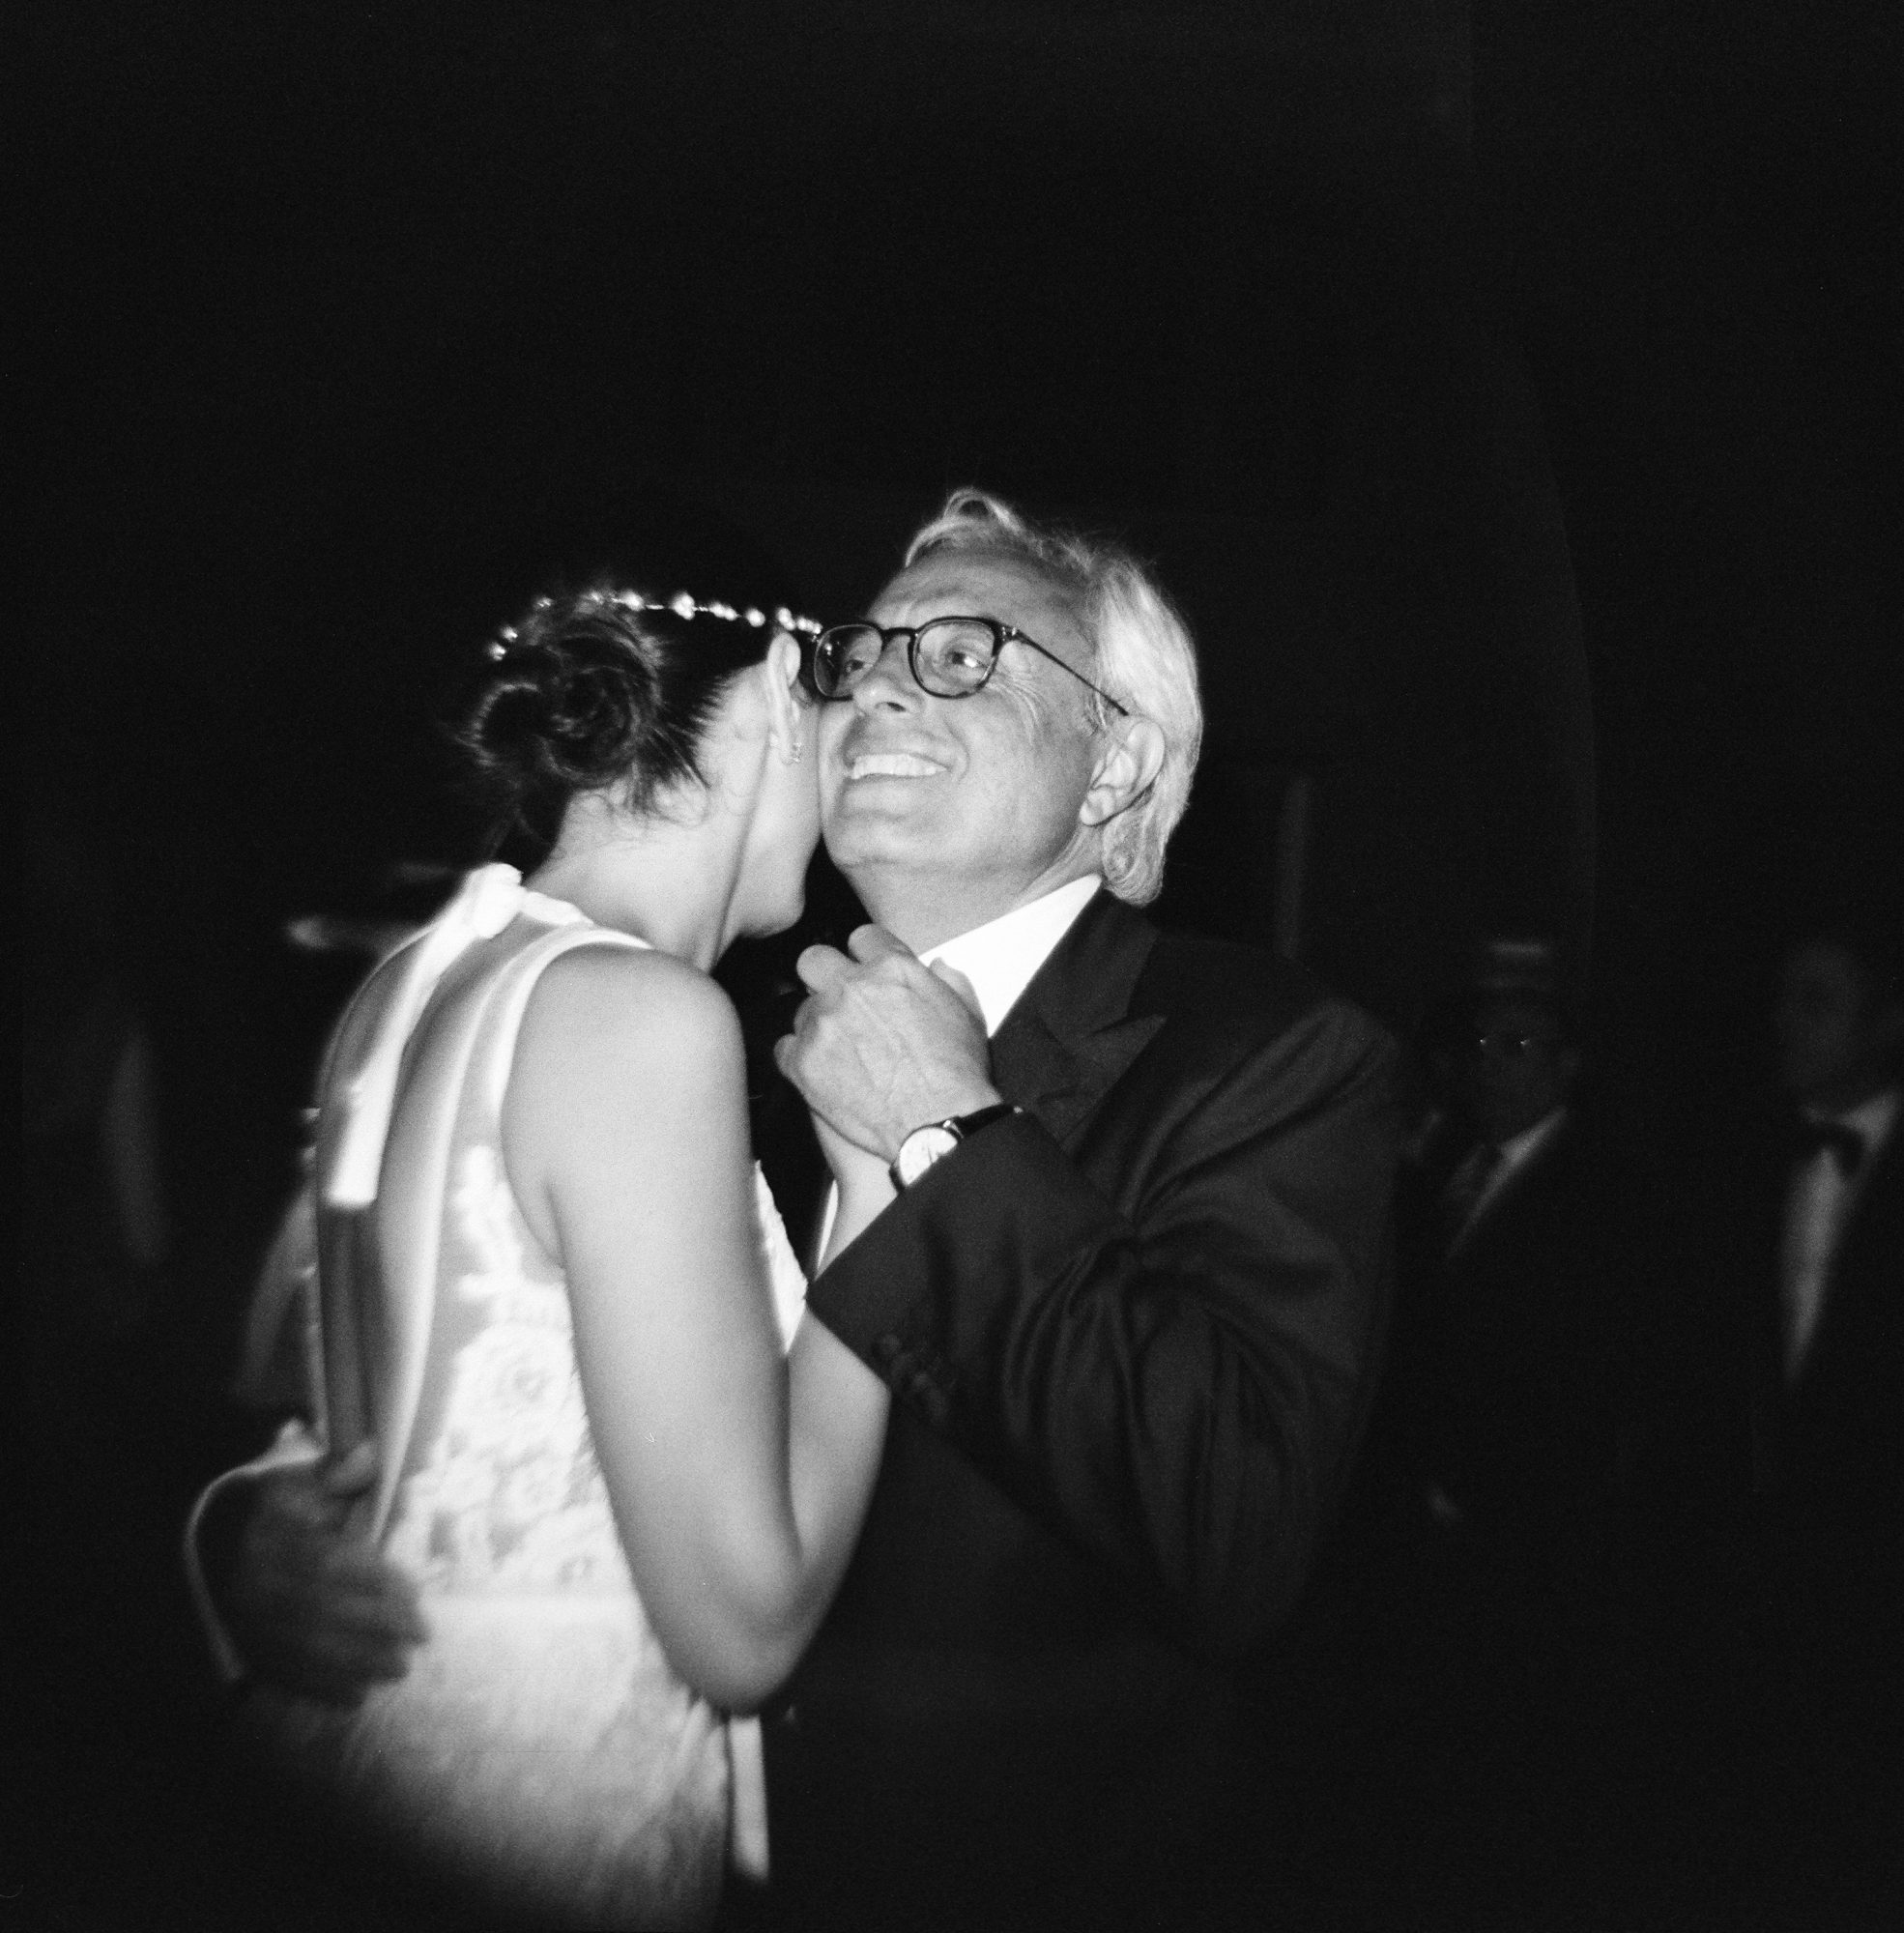 fathers-daughter-moments-gia-canali